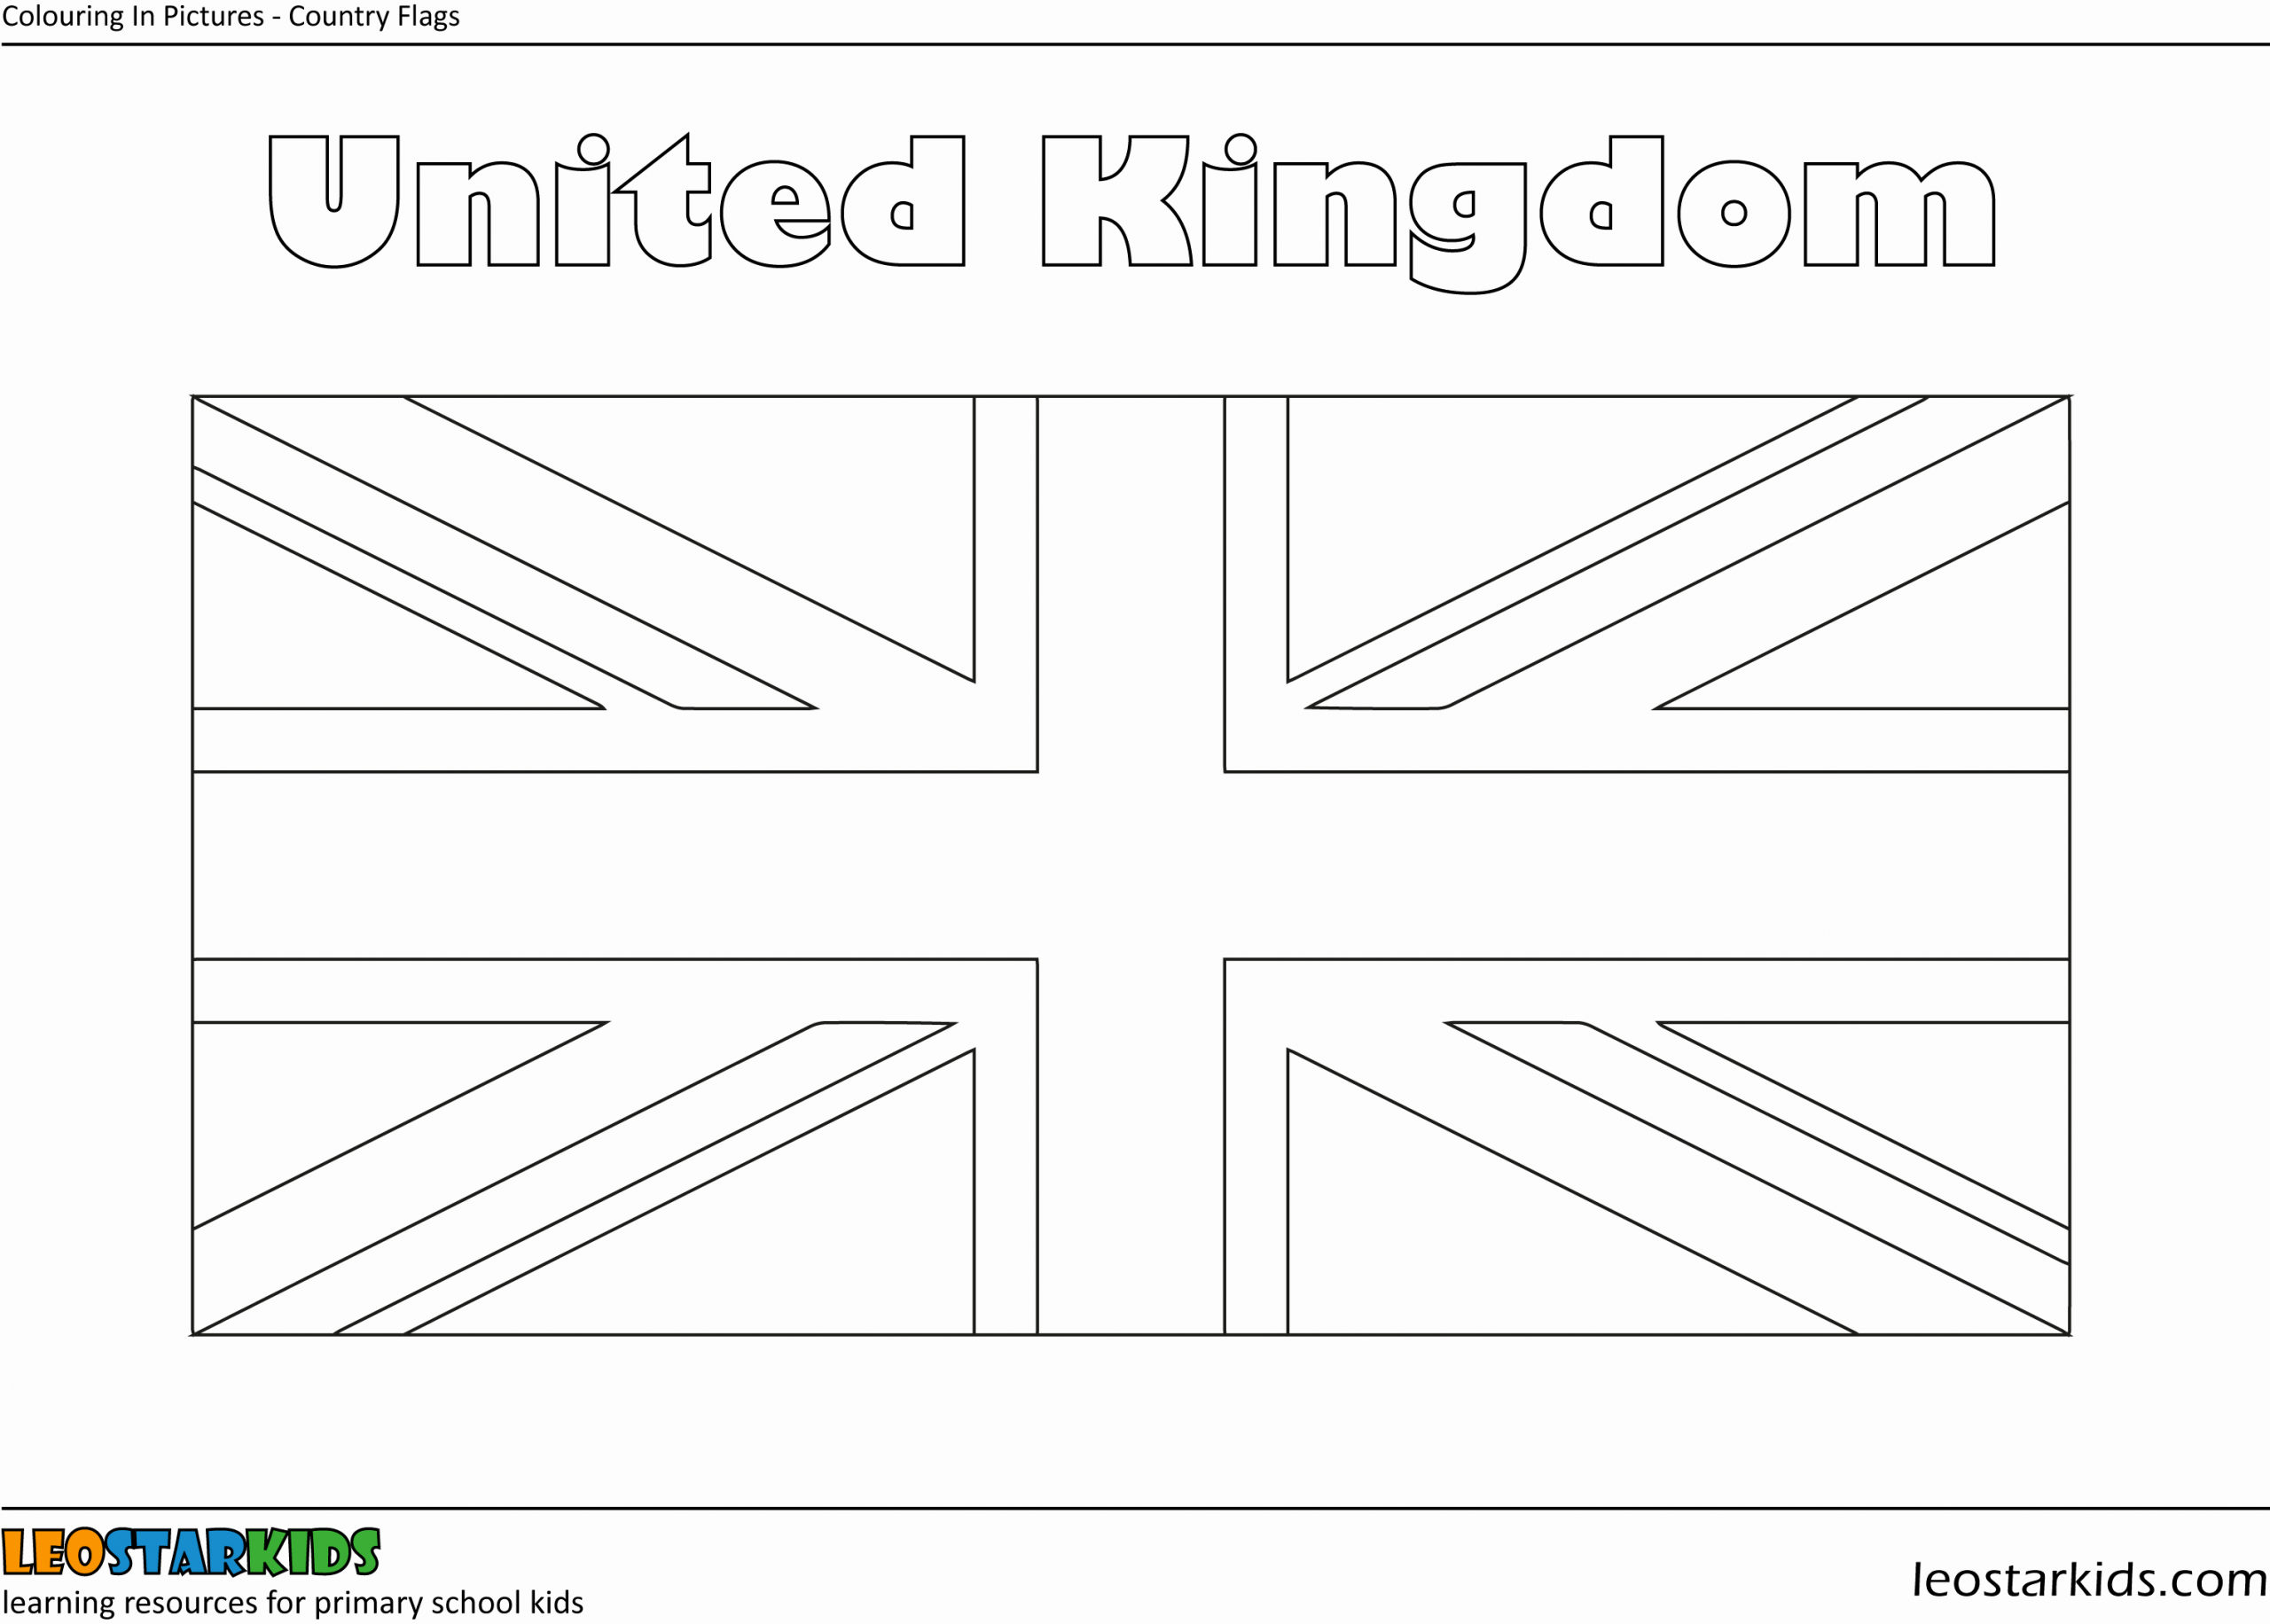 Uk Flag Coloring Page Best Of Colouring In National Flags Leostarkids In 2020 Flag Coloring Pages Uk Flag Coloring Pages